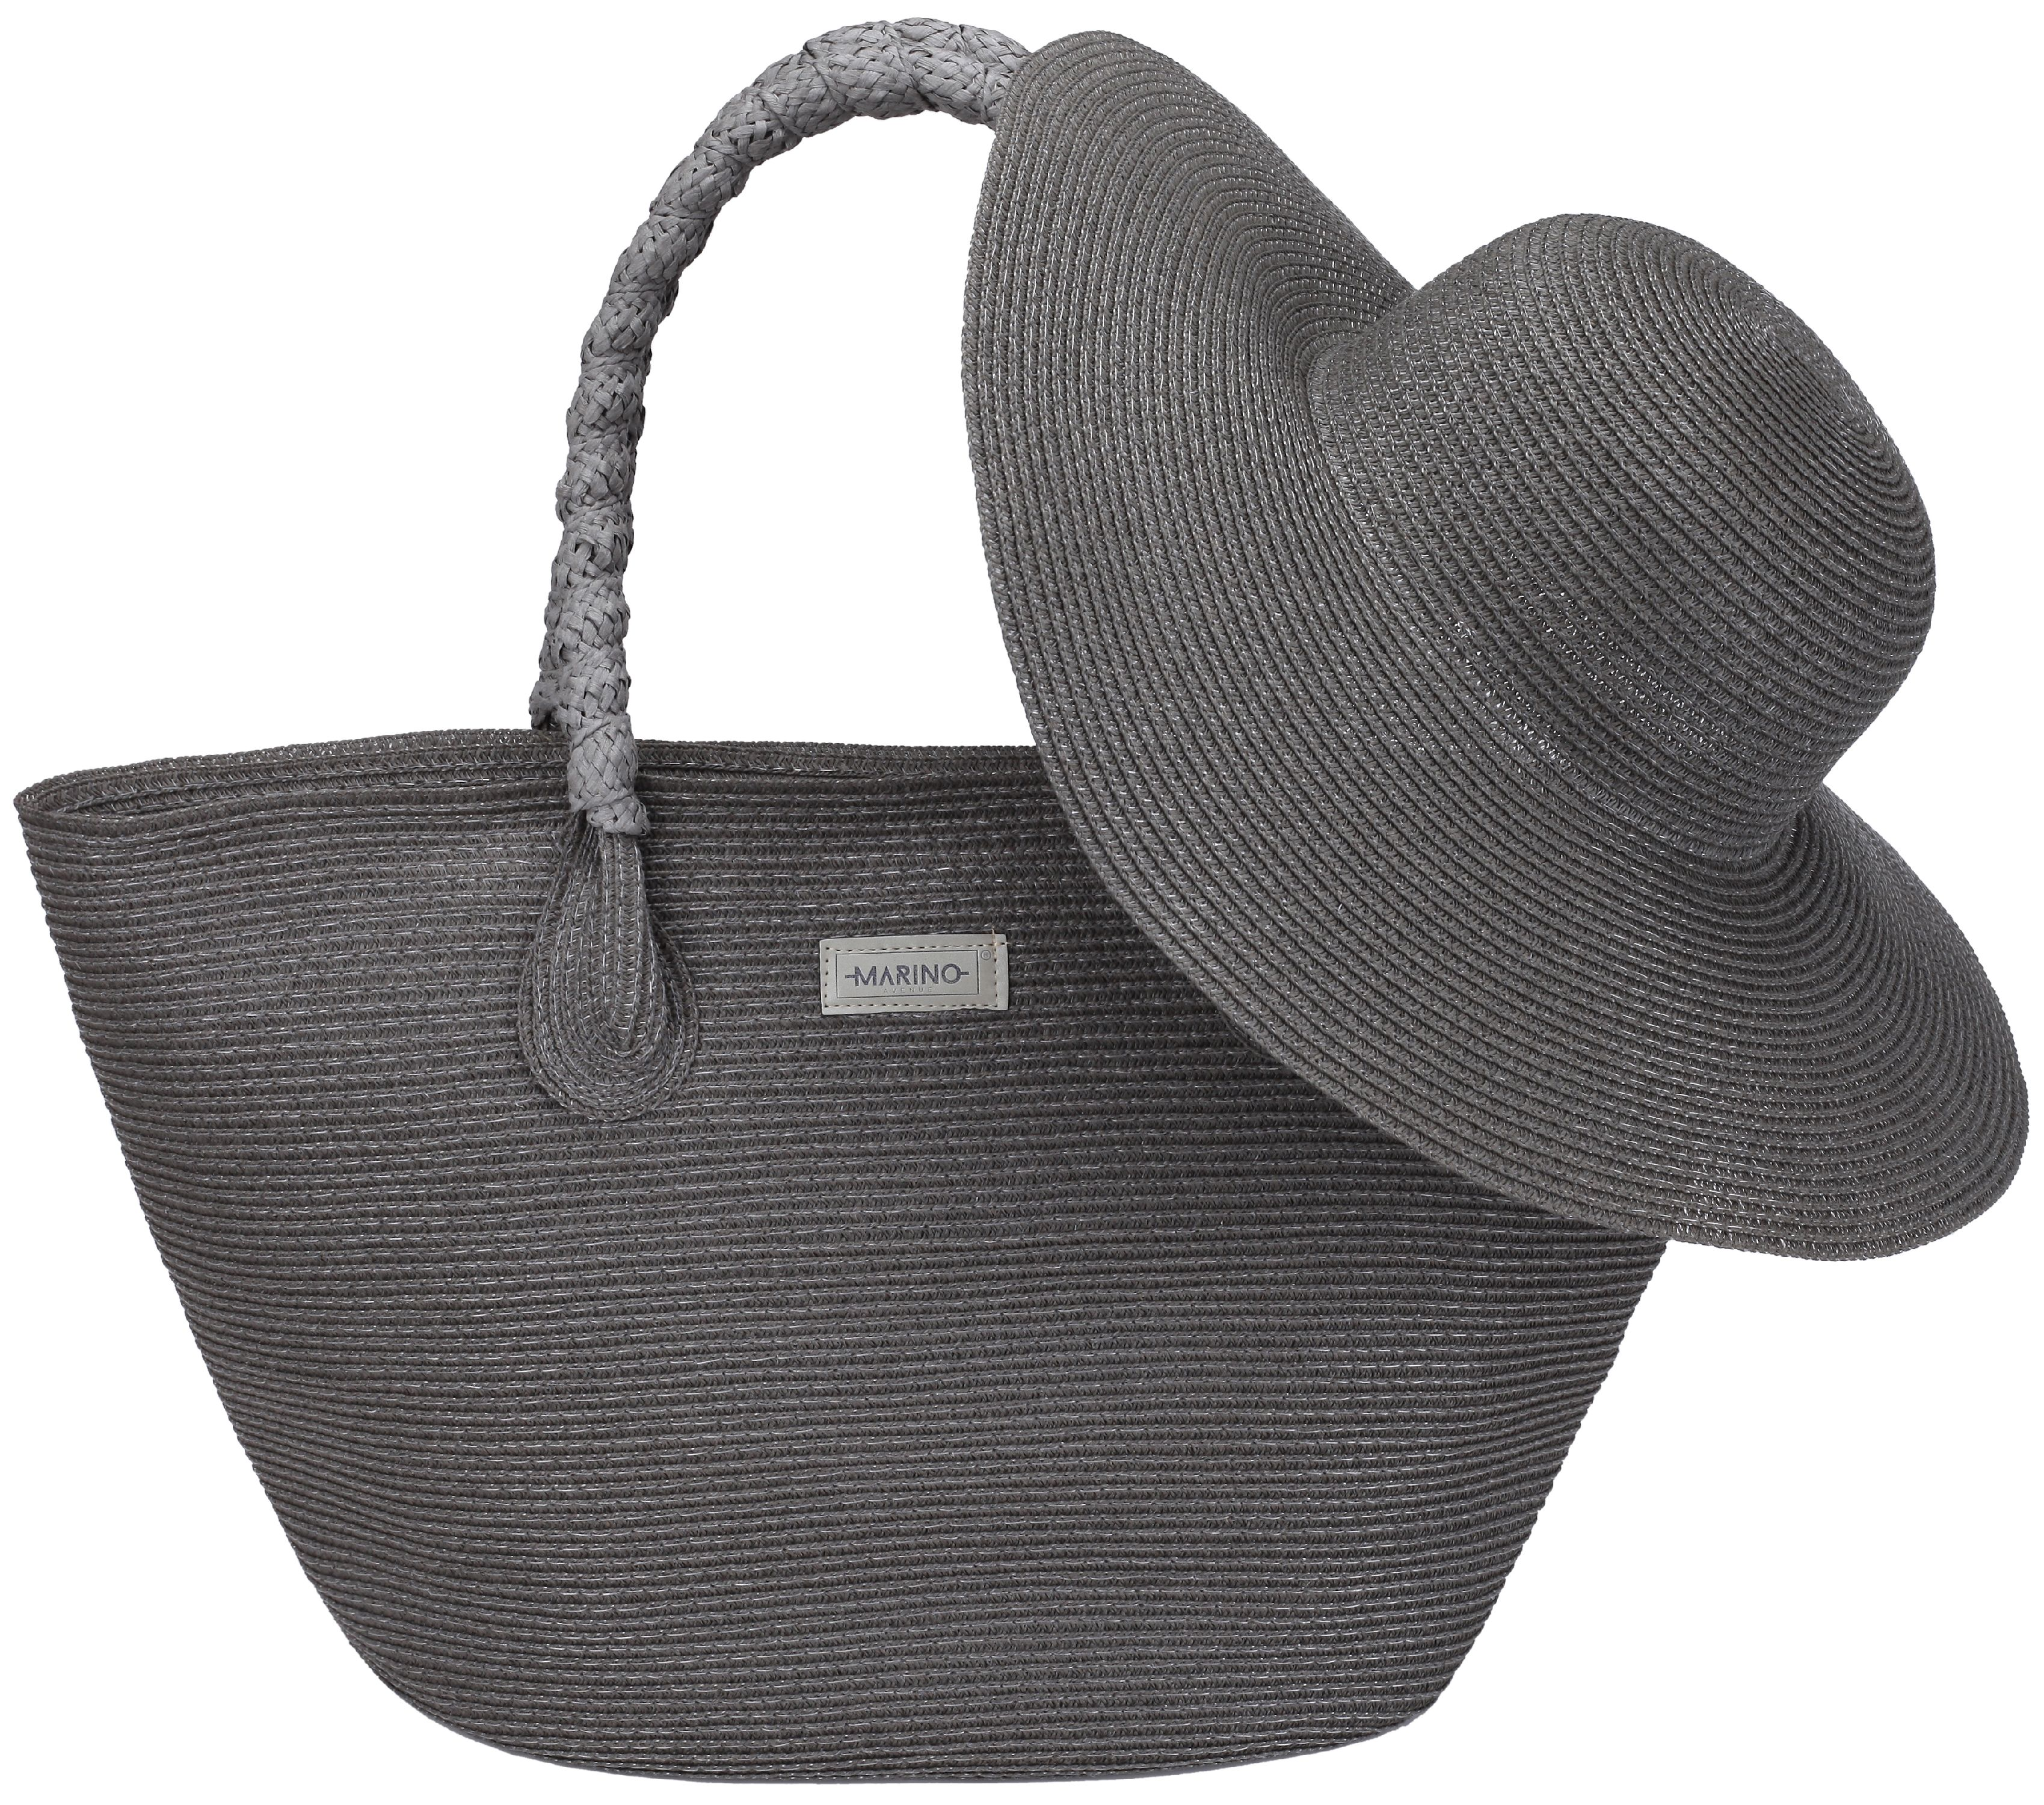 Marino Avenue - Marino Best Beach Tote Bag and Suns Hat for Women - Floppy  Straw Hat and Swimming Bag - Sun Protection Hat UPF 50+ - Gray - One Size  ... ce7dc4bbcf8d